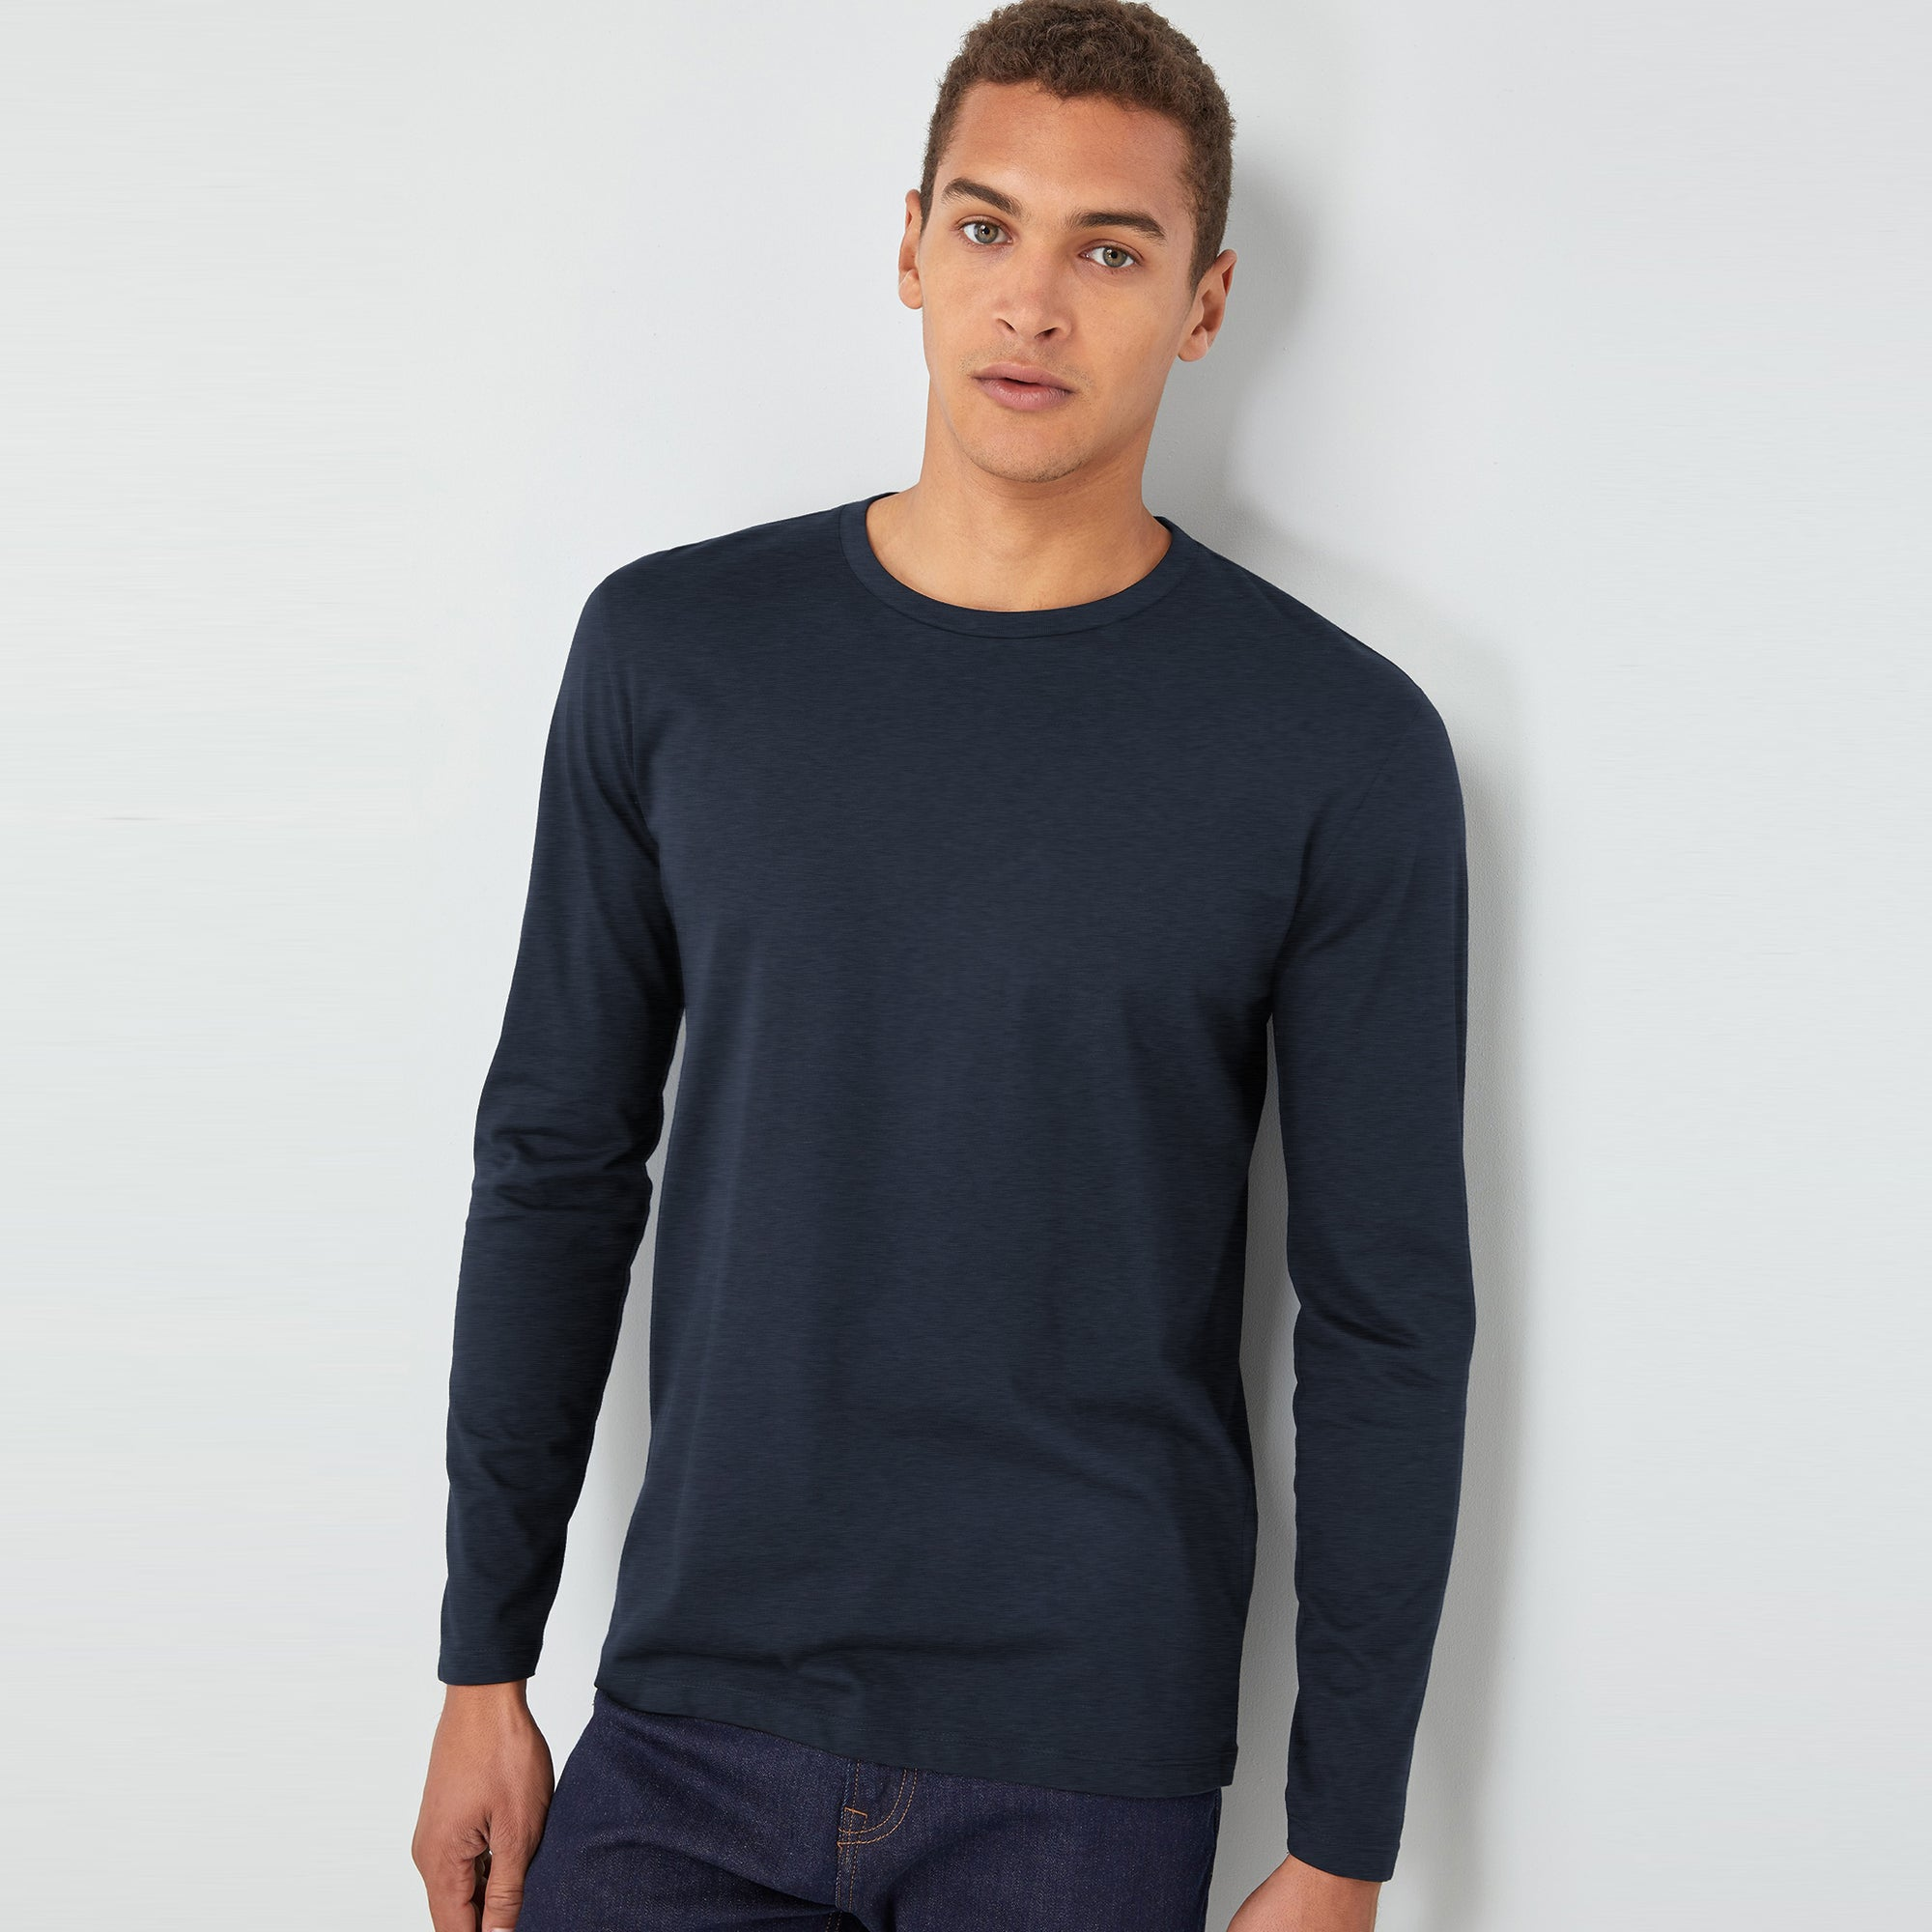 Beverly Hills Single Jersey Long Sleeve Tee Shirt For Men-Navy Melange-BE8893